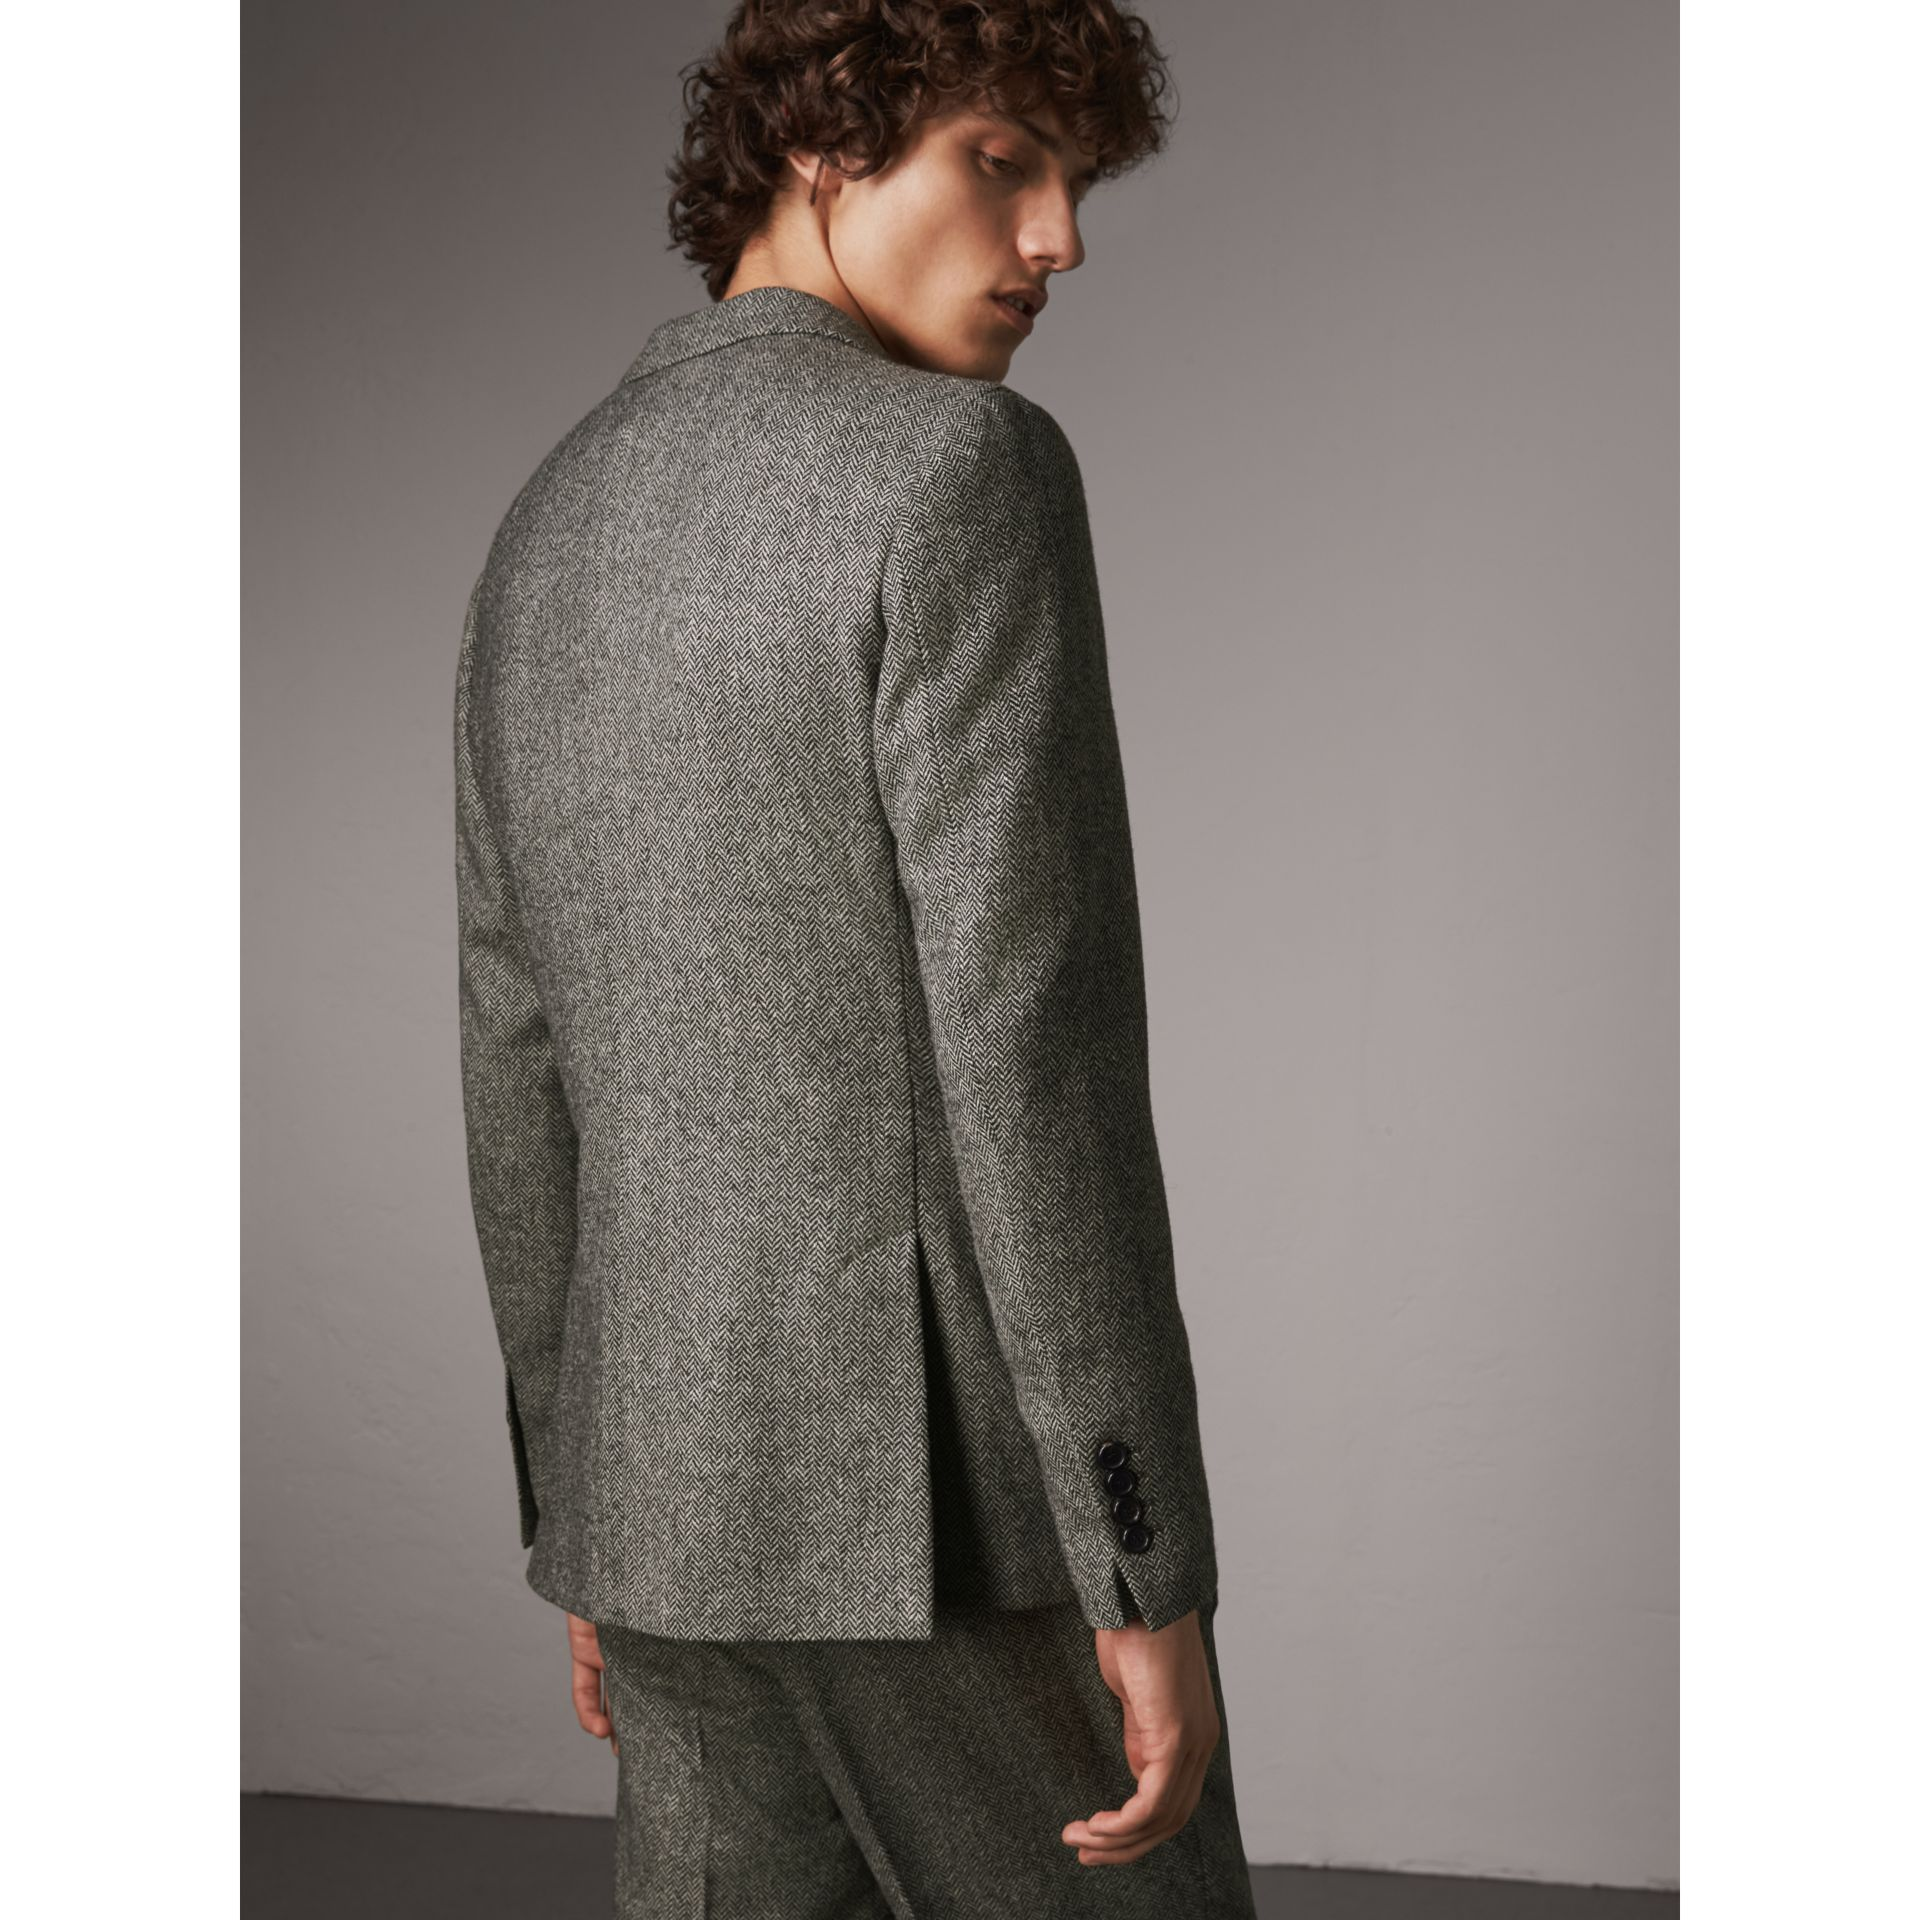 Soho Fit Herringbone Wool Tailored Jacket in Black / White - Men | Burberry Singapore - gallery image 3